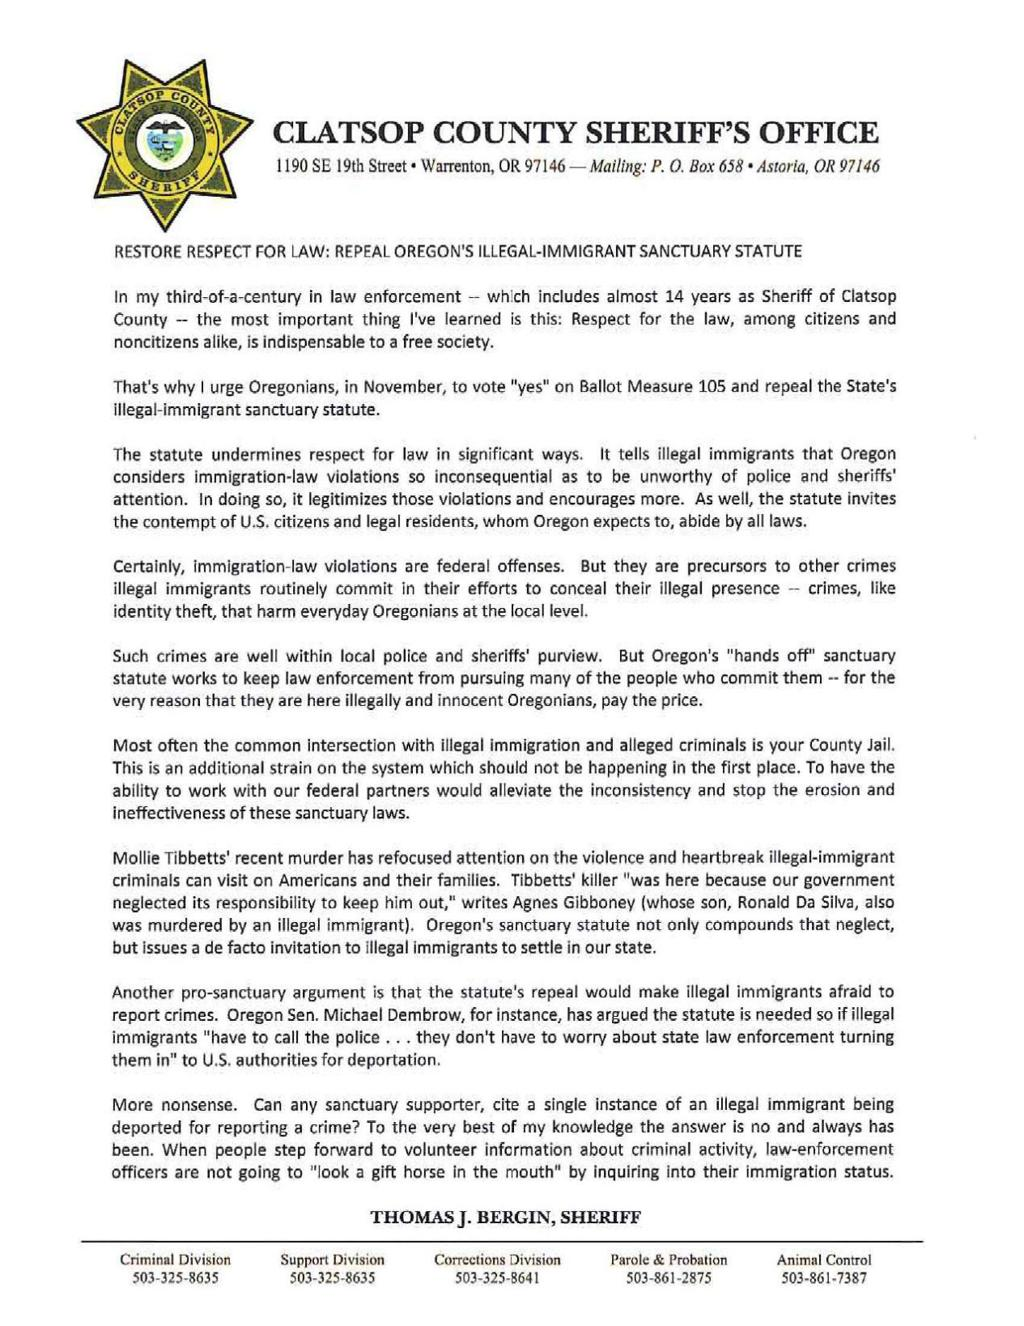 Sheriff responds to letter calling for sanctuary law repeal